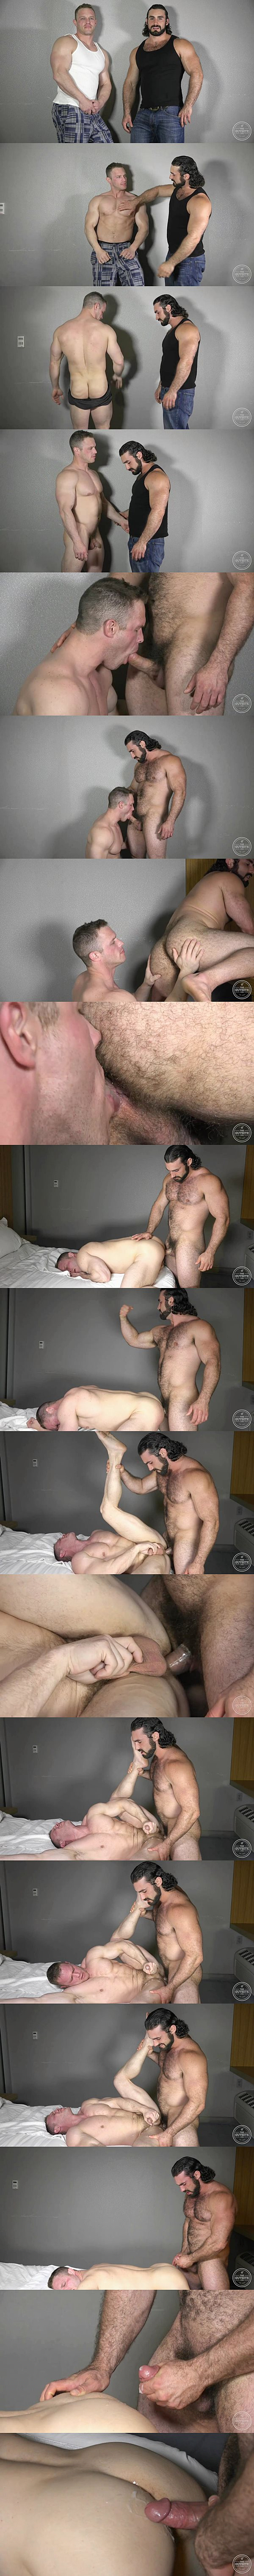 Sexy hairy hunk Jaxton Wheeler fucks muscled stud Zach's tight bubble ass until he fucks the cum out of Zach at Theguysite 02